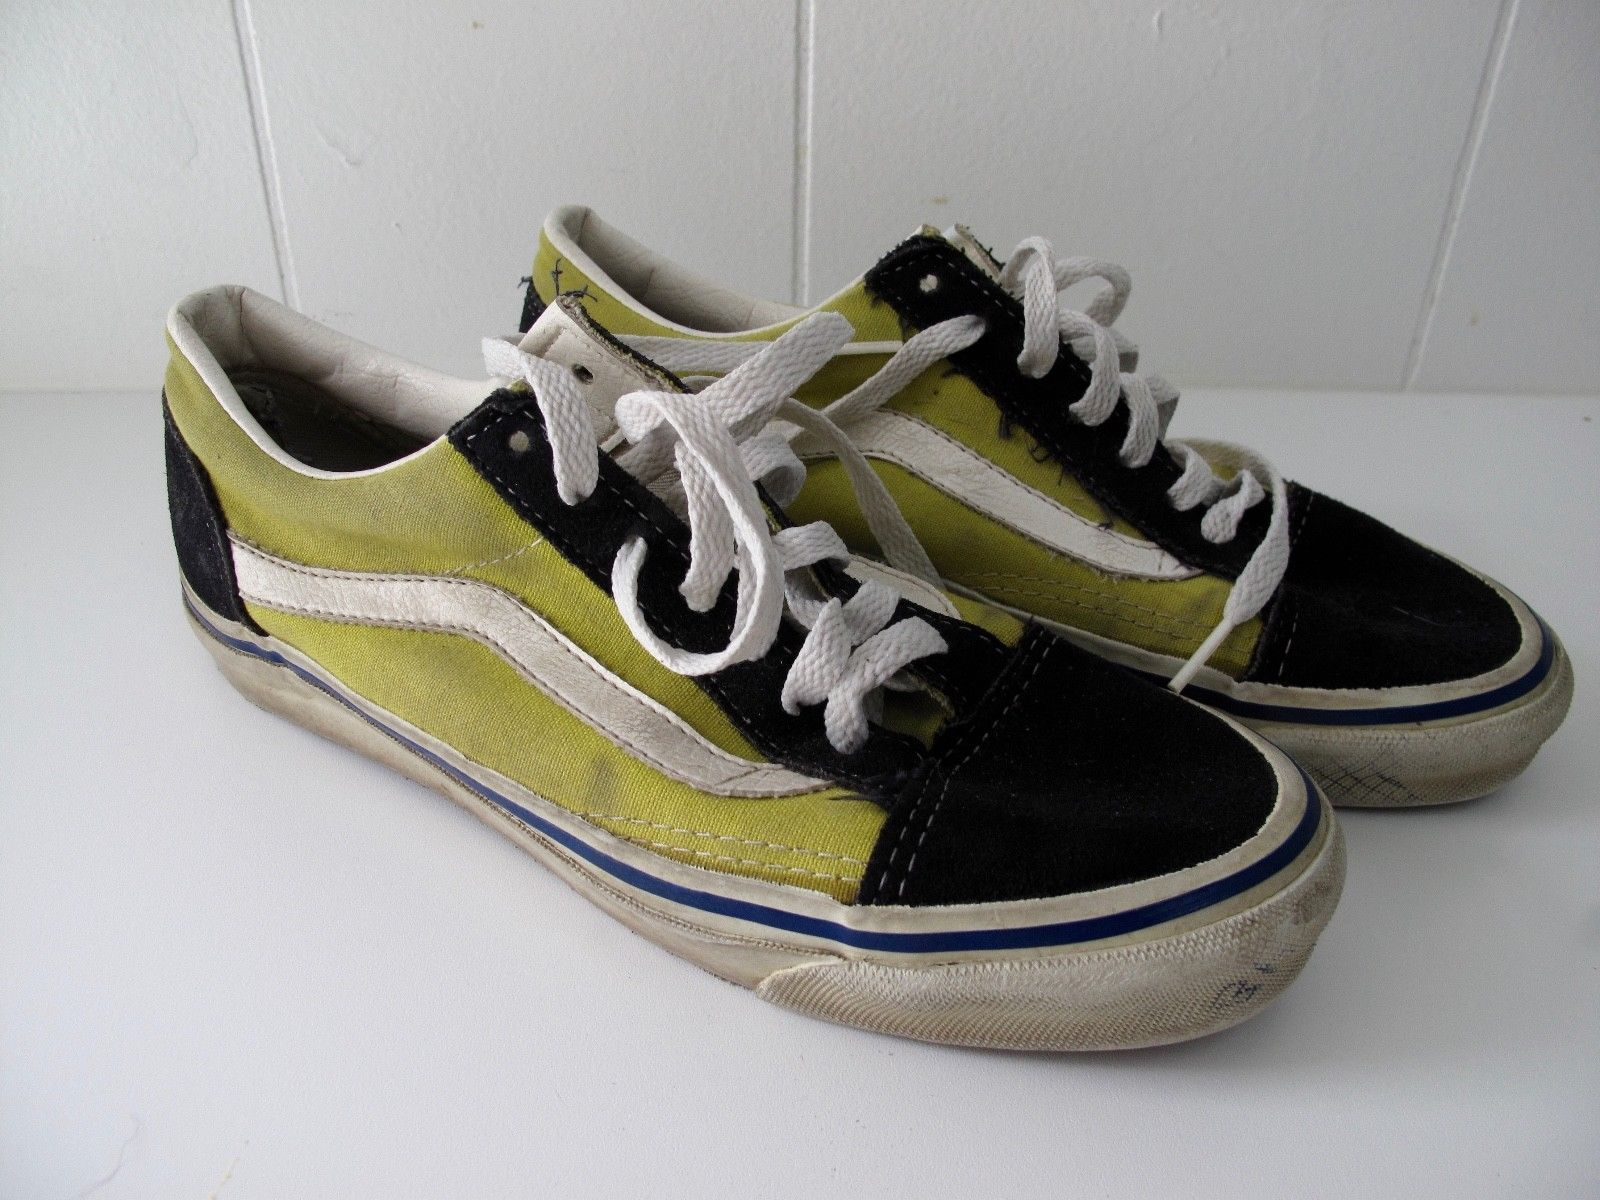 8c7e4acd8607 Vintage Vans Old Skool Made in USA Size 8-8.5 Yellow Black White ...